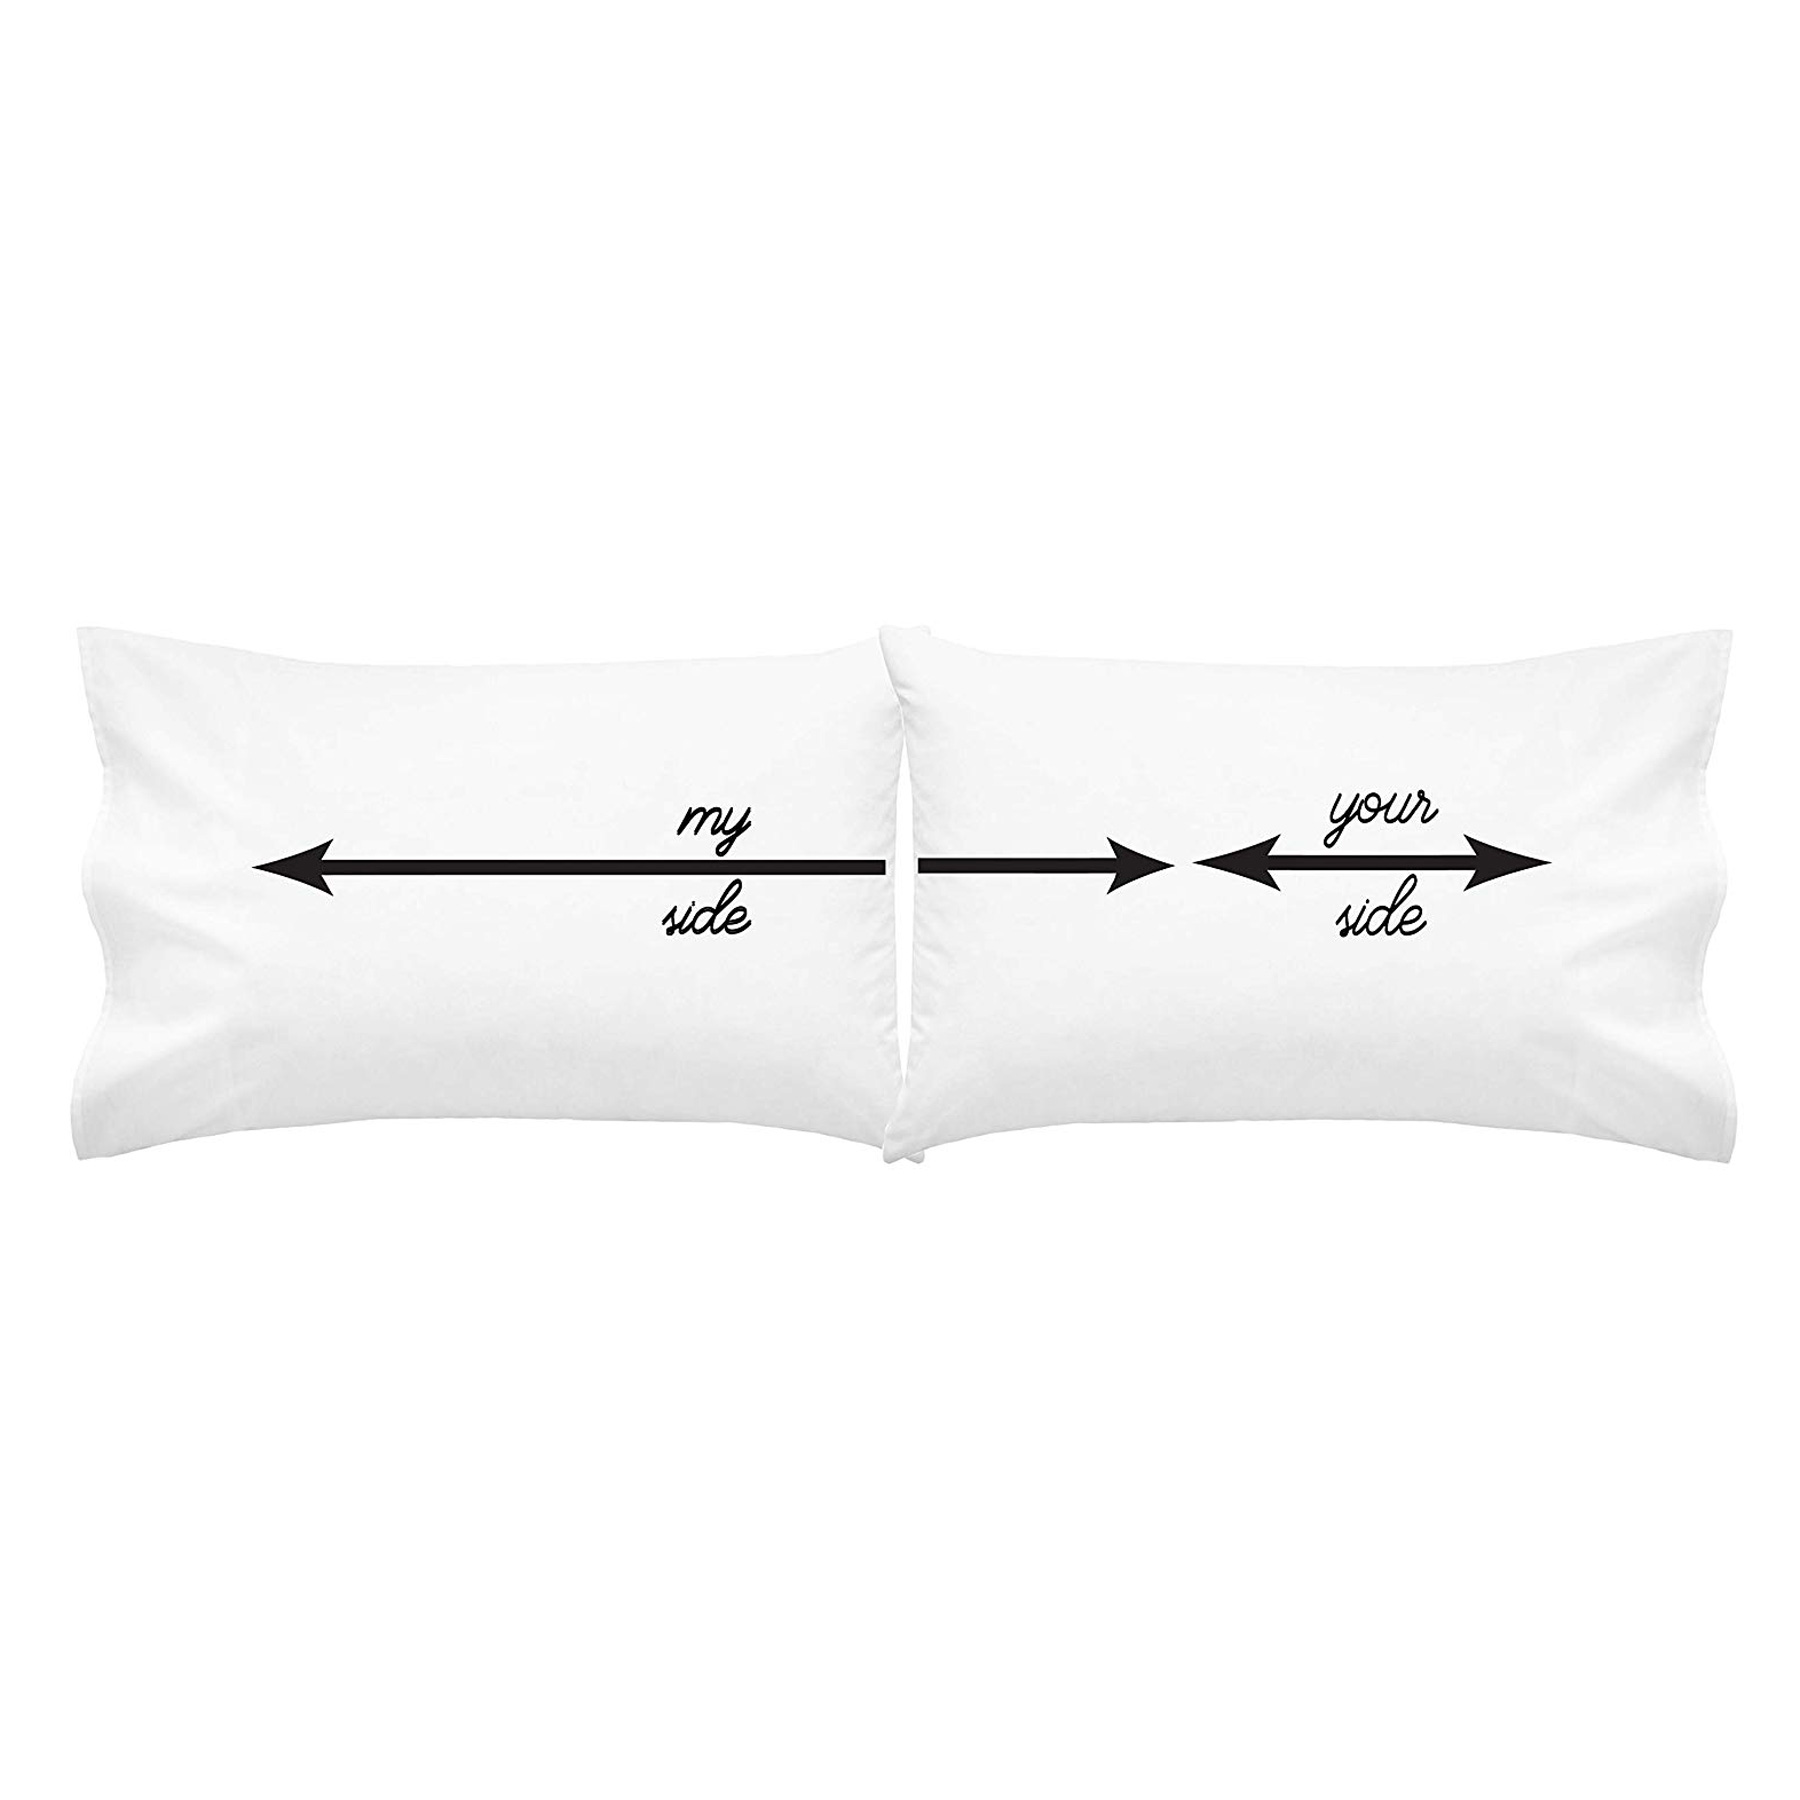 Funny Valentine's Day Gifts: Your Side, My Side Pillowcases